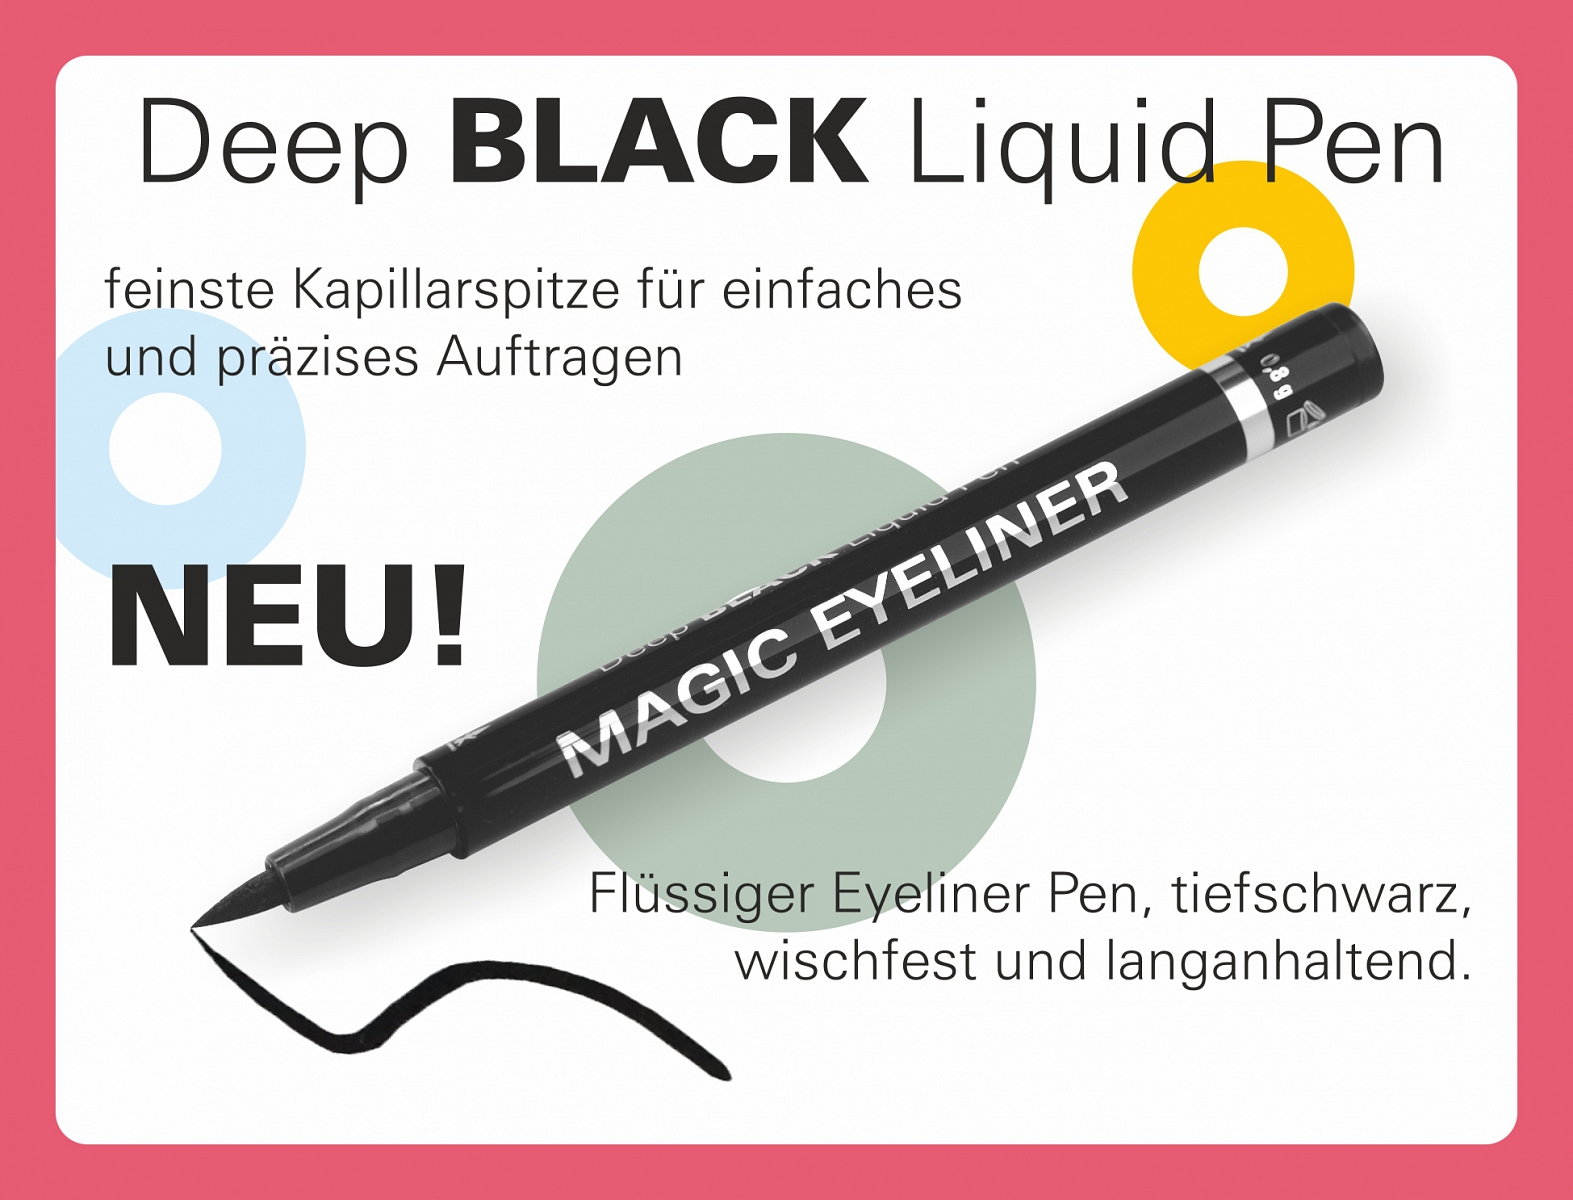 Deep BLACK Liquid Pen